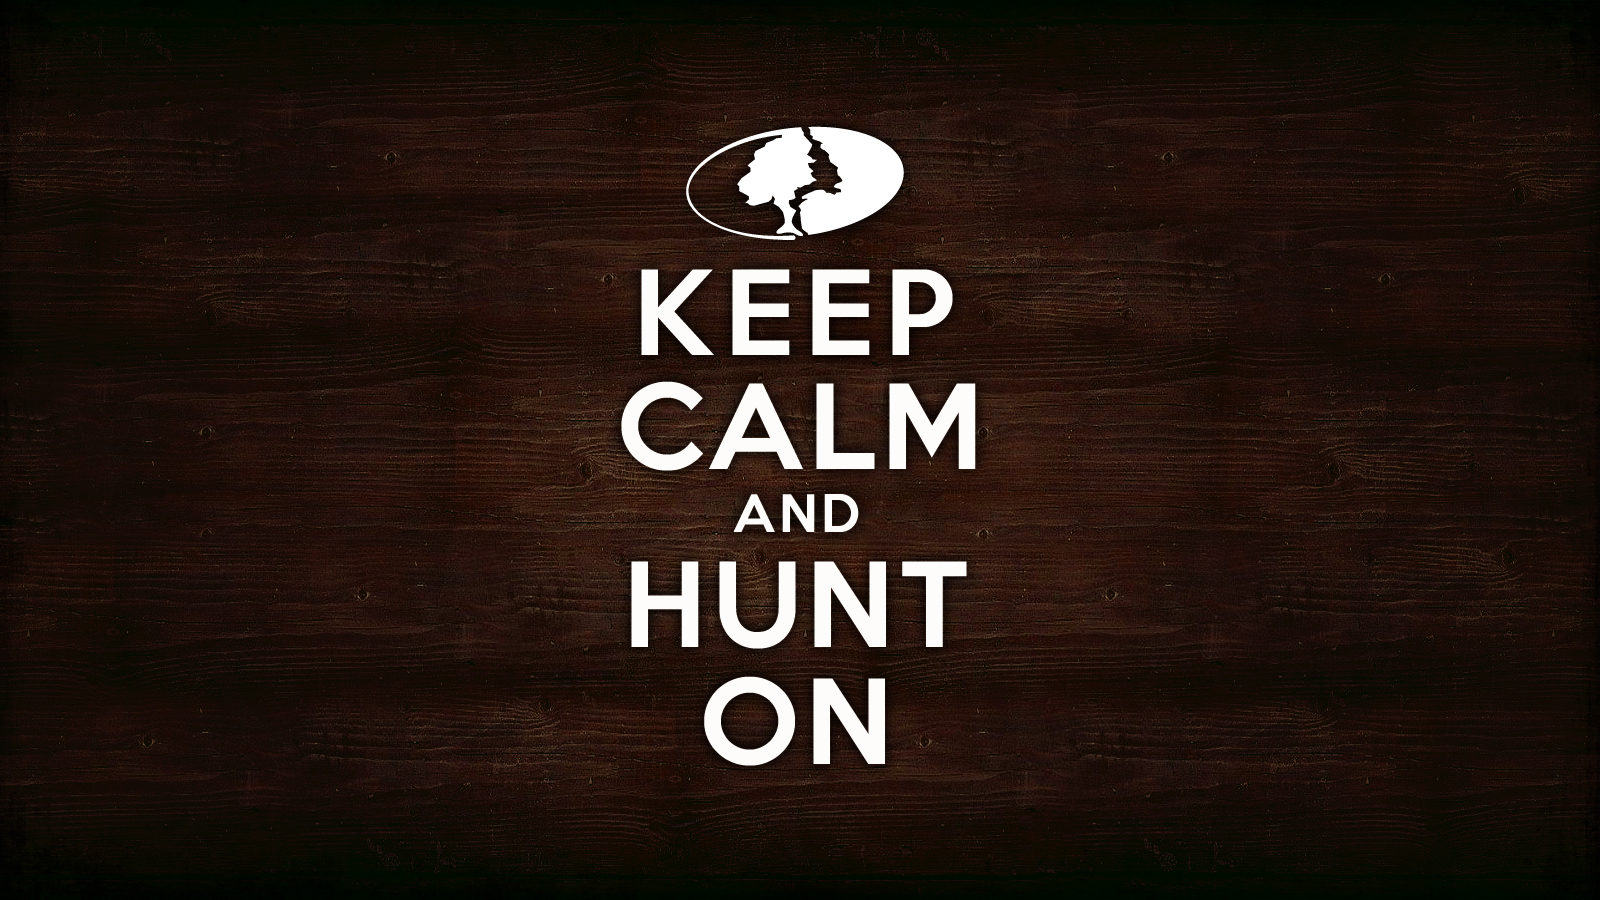 Turkey Thugs Wallpaper Keep Calm And Hunt on